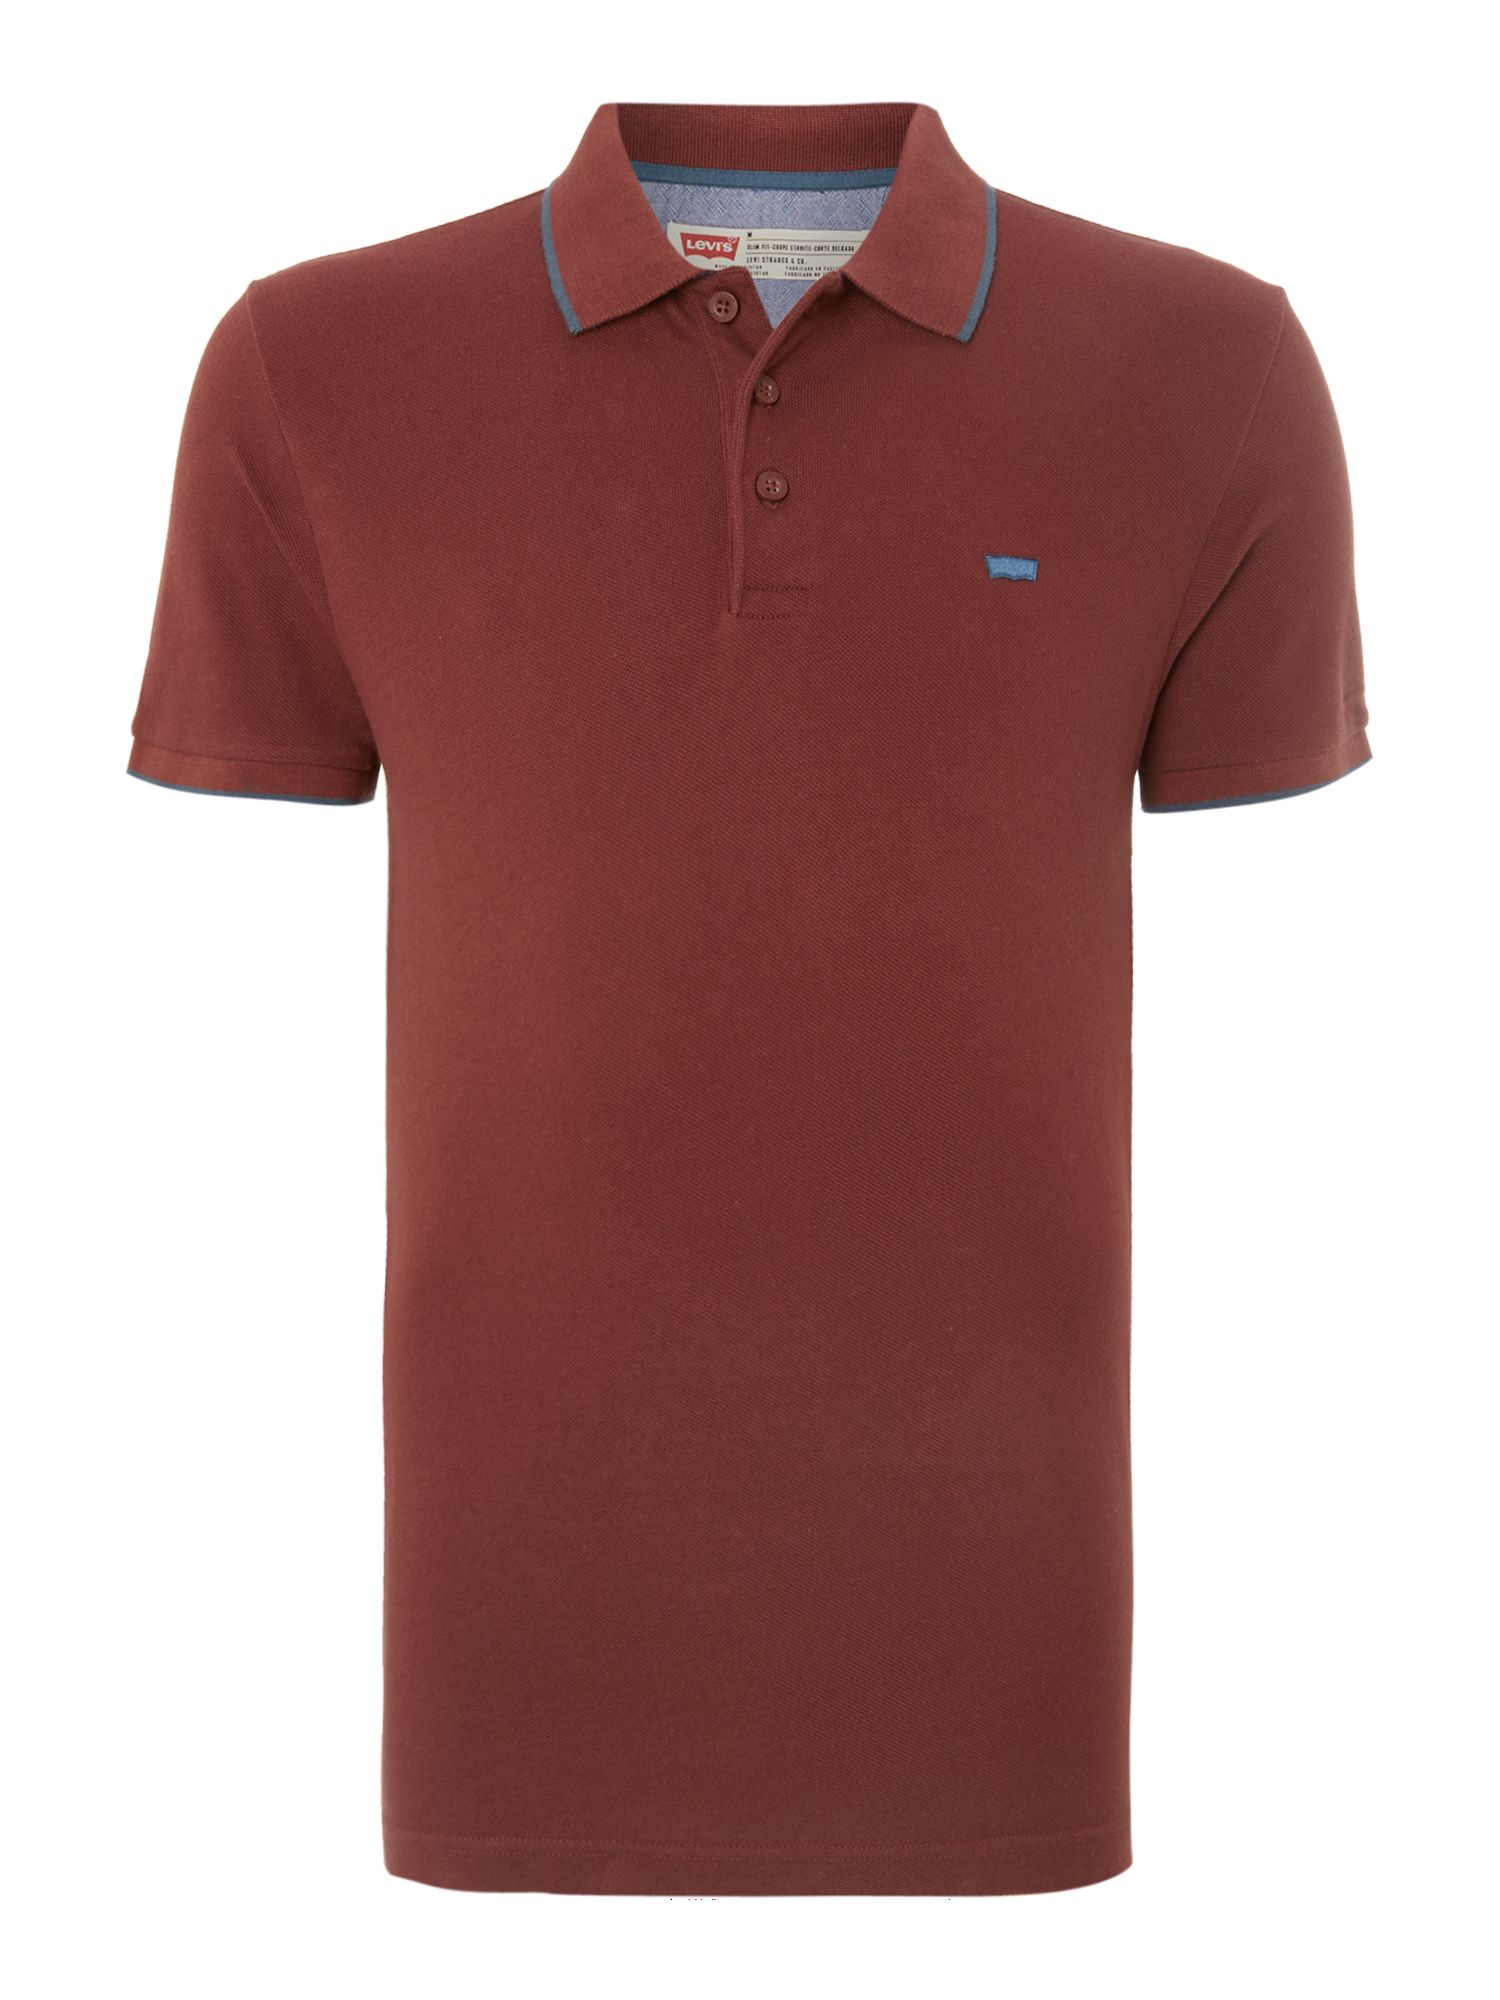 Bernal slim pique collar polo shirt